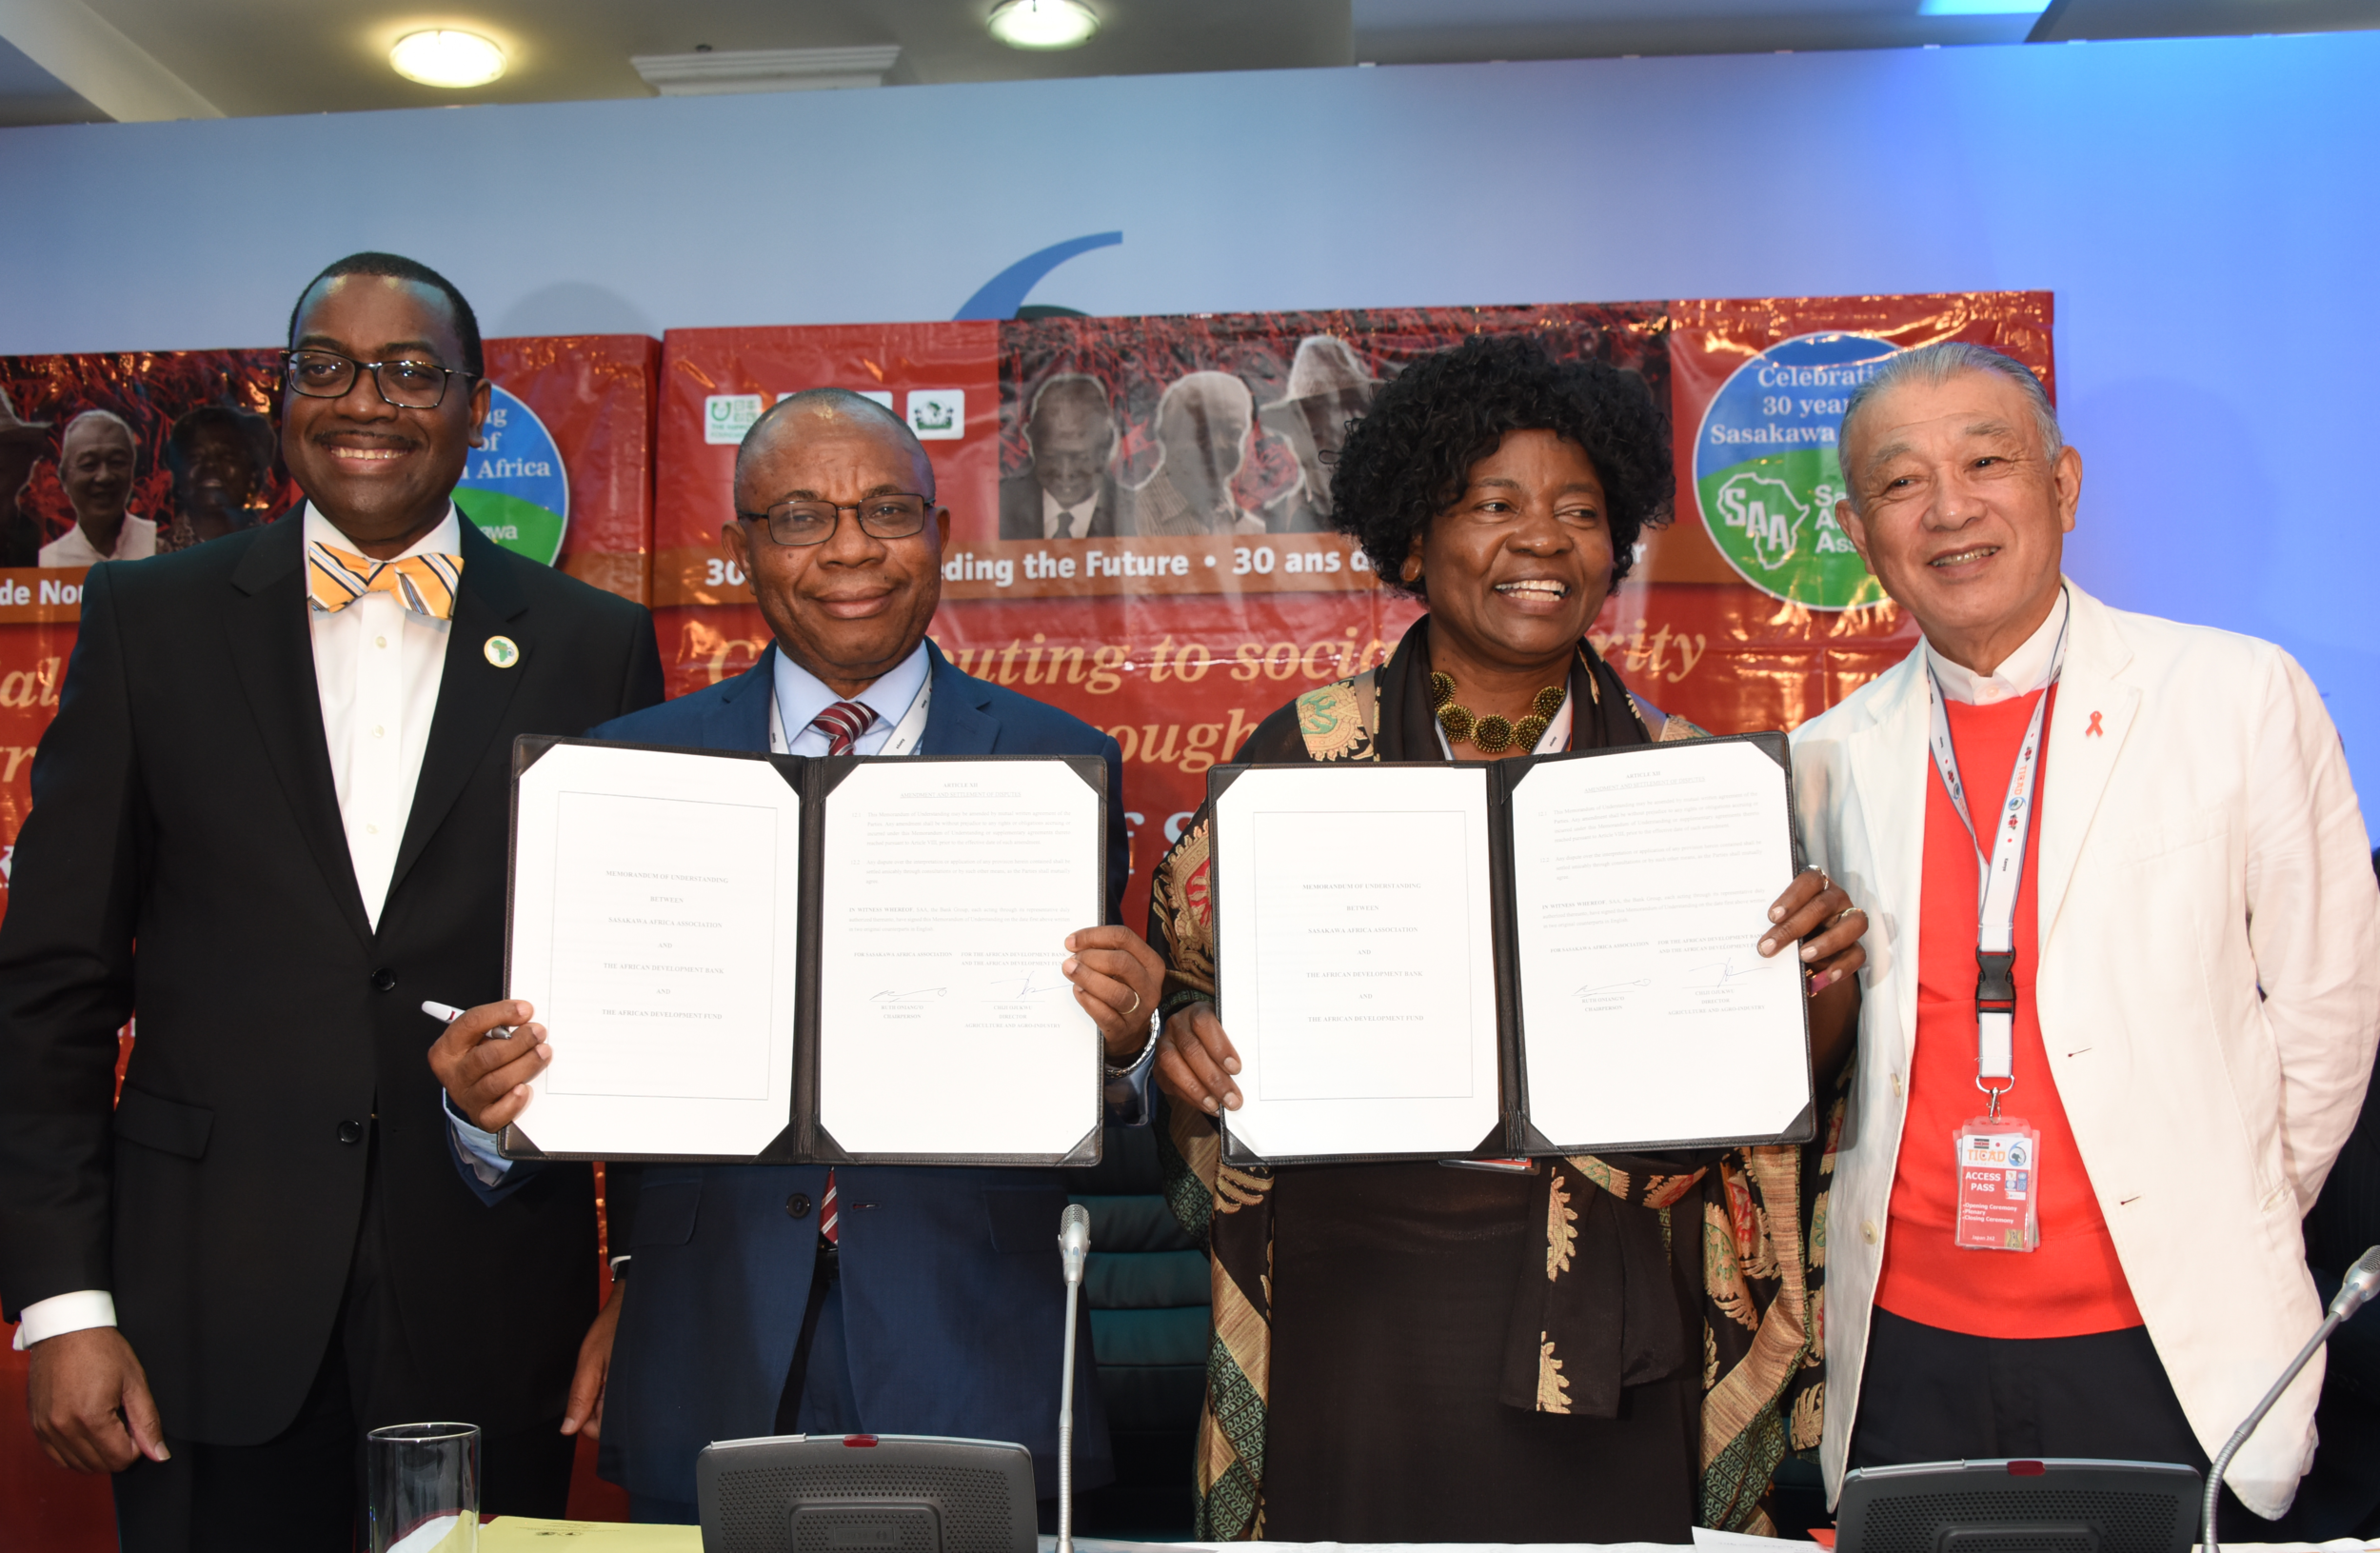 A Memorandum of Understanding is signed with the African Development Bank.